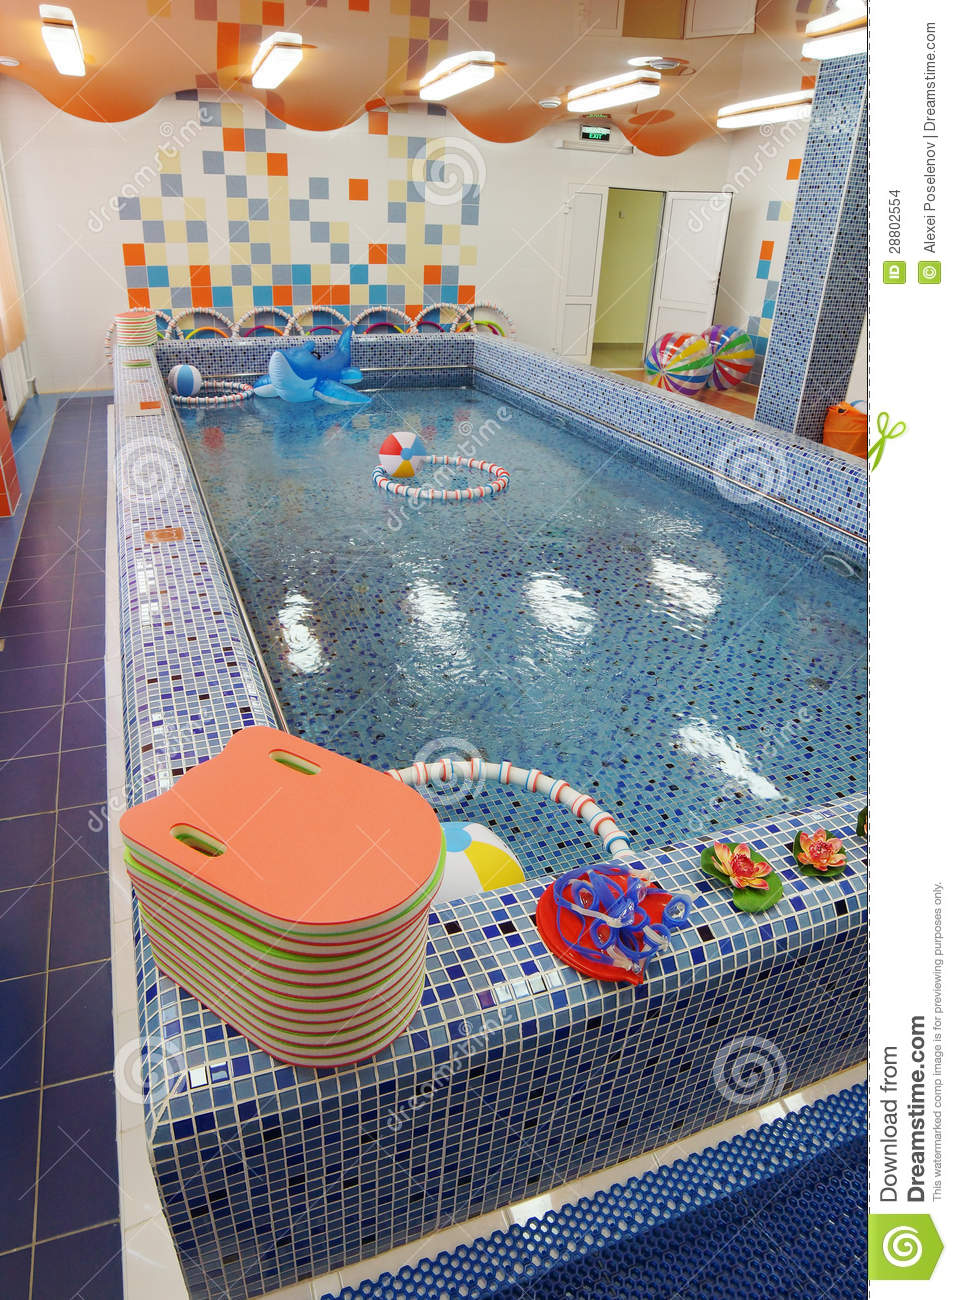 Swimming Pool In A Kindergarten Stock Photo Image 28802554